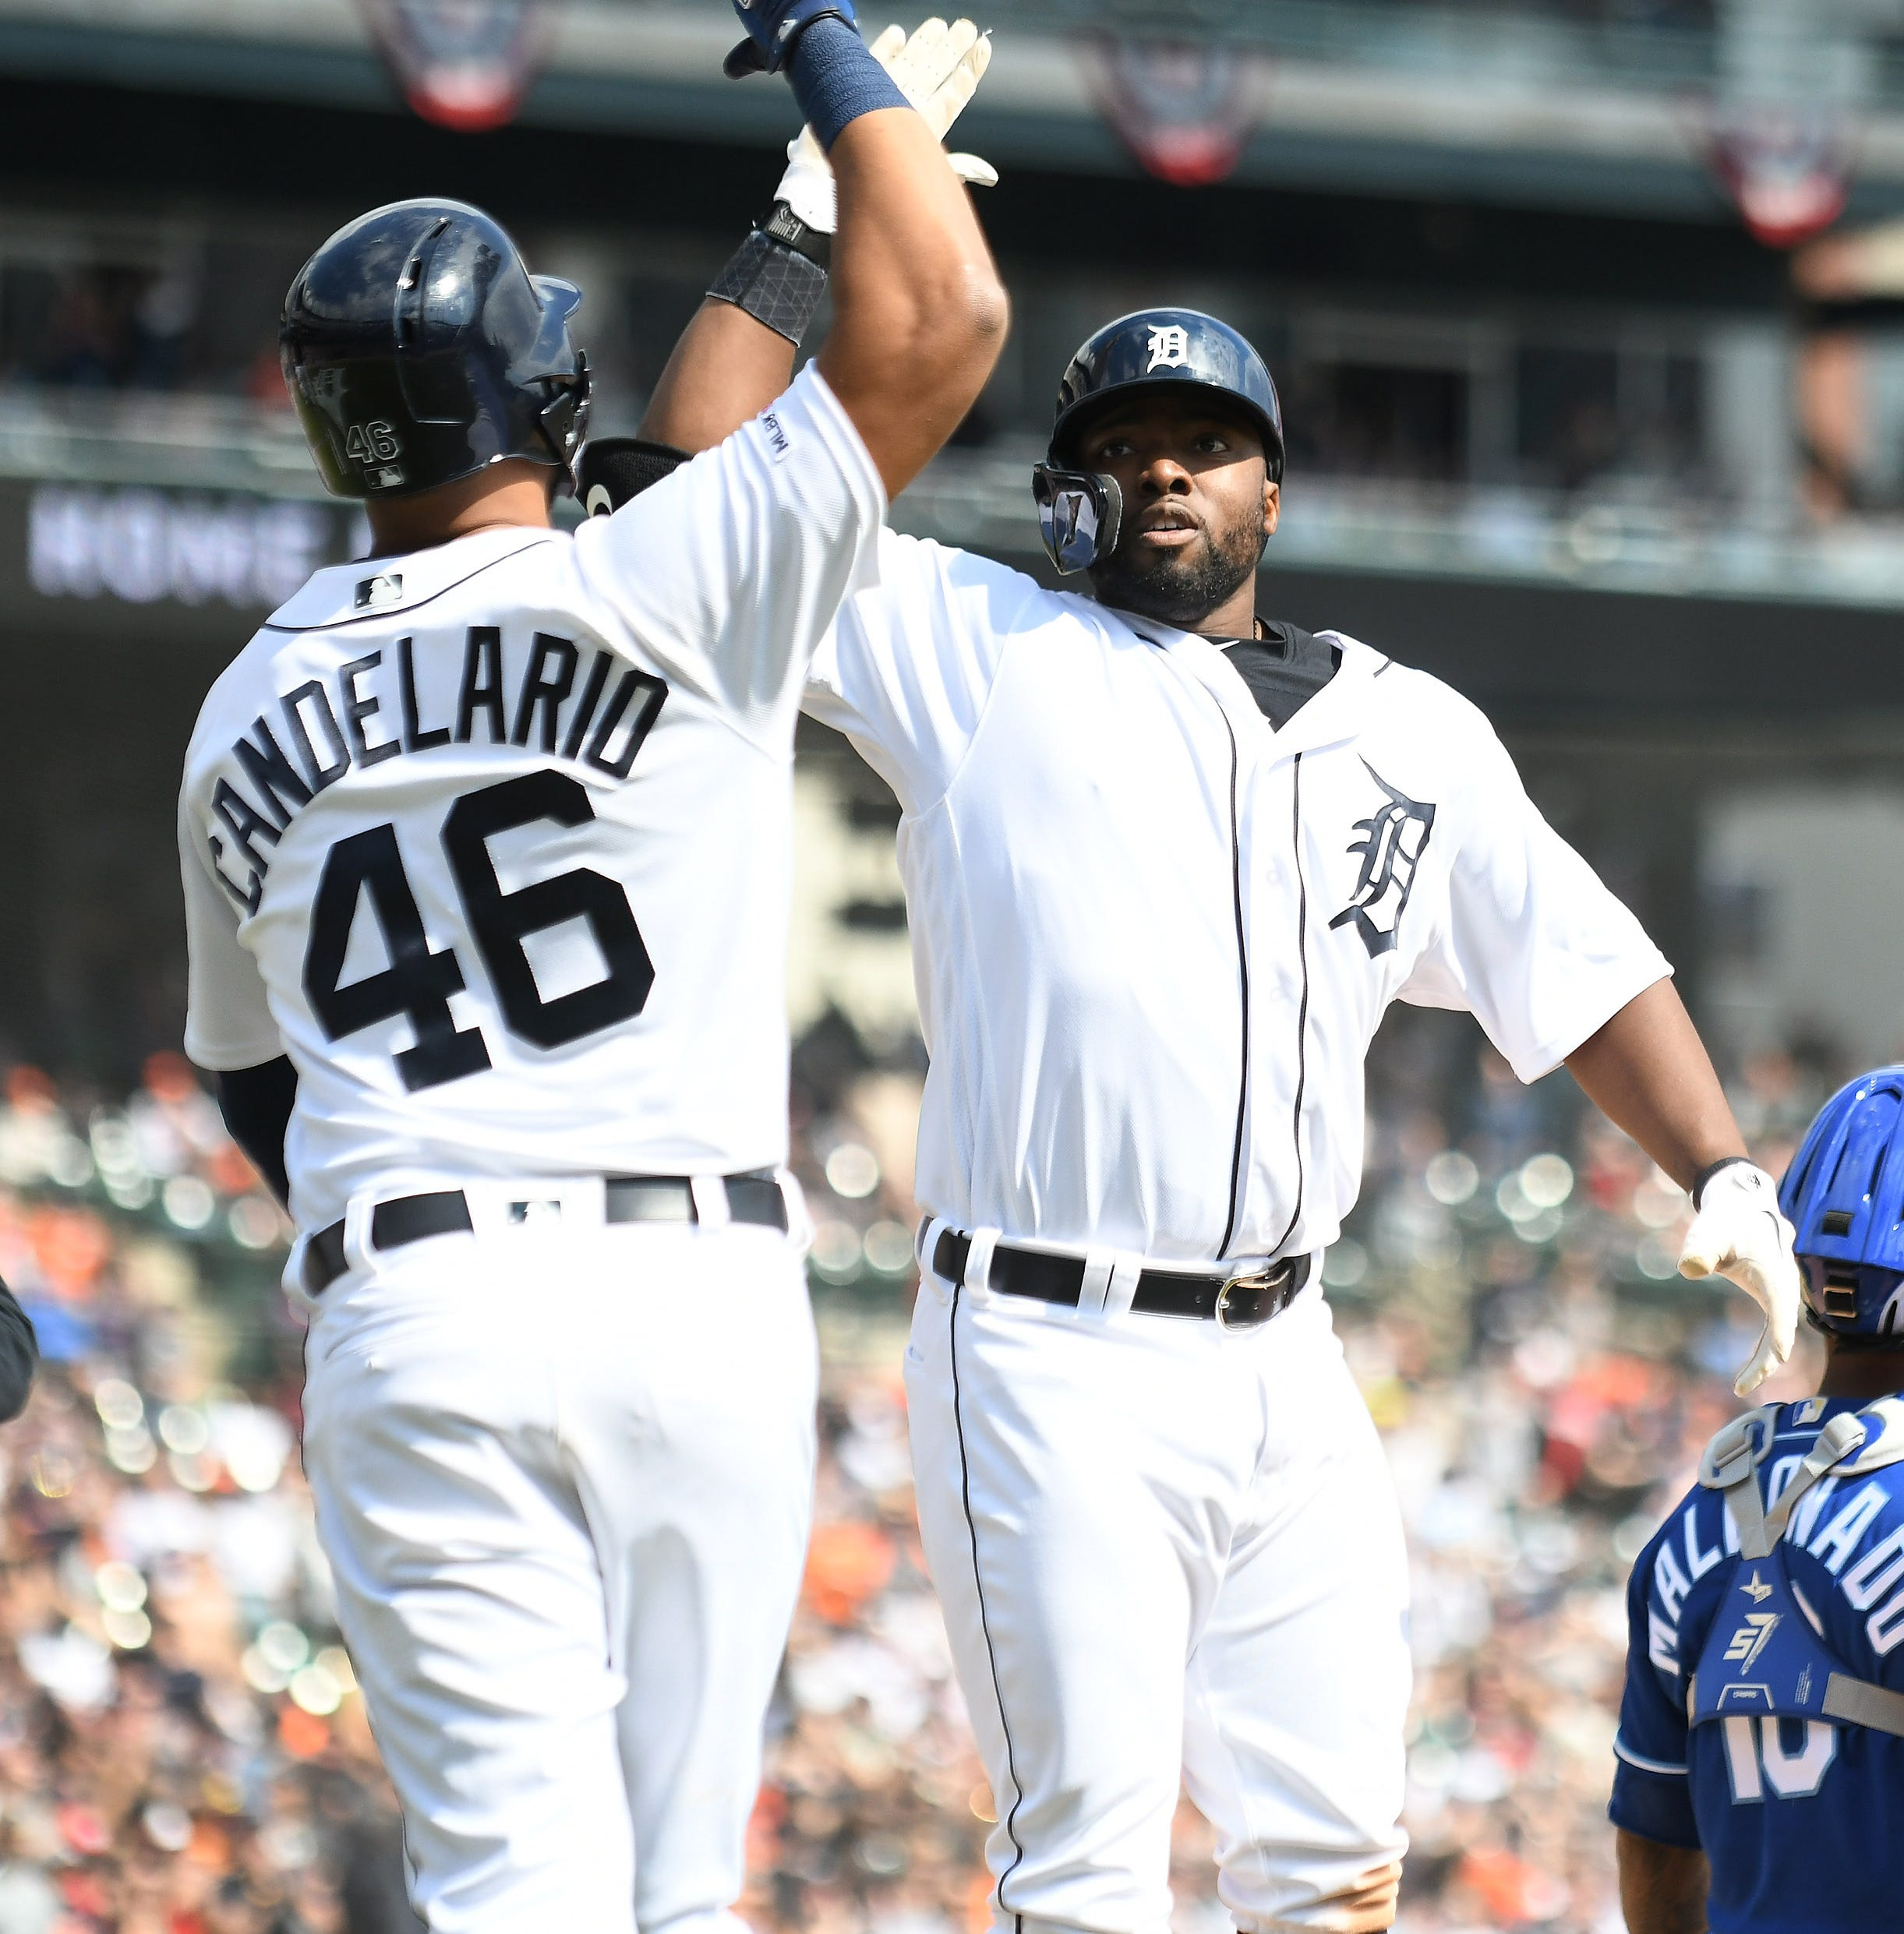 Stewart slam powers Tigers to fourth straight win; Moore injured